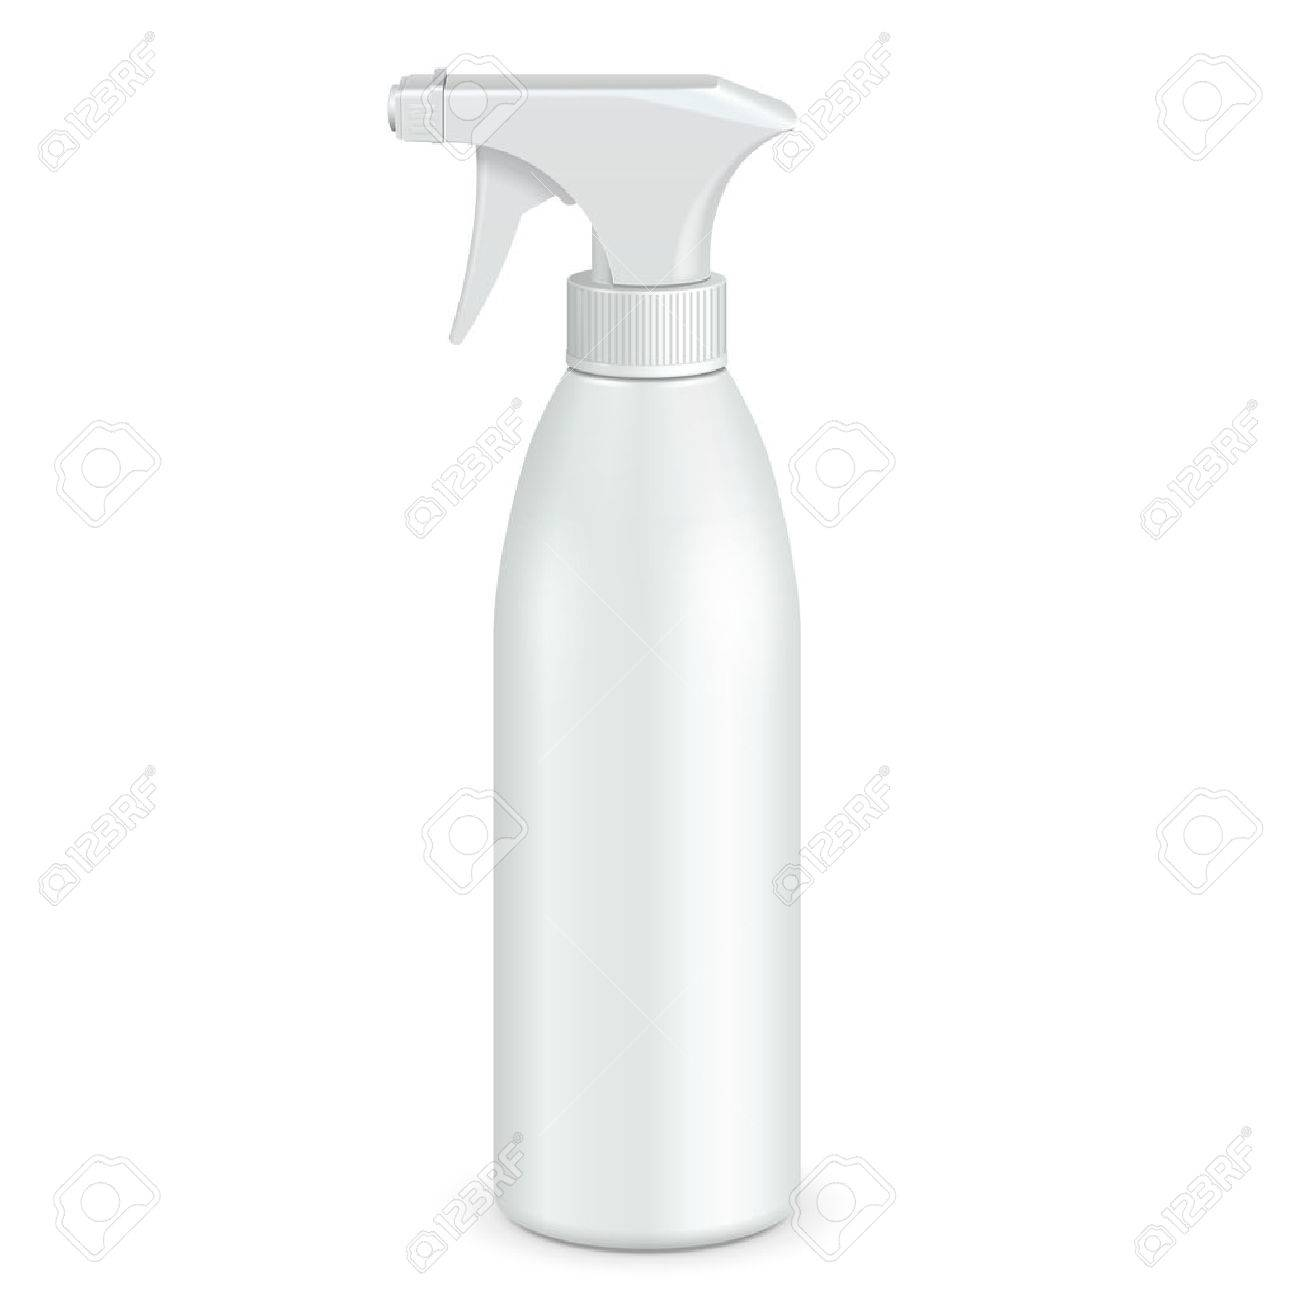 Spray Pistol Cleaner Plastic Bottle White. Illustration Isolated On White Background. Ready For Your Design. Product Packing. Vector - 57081287